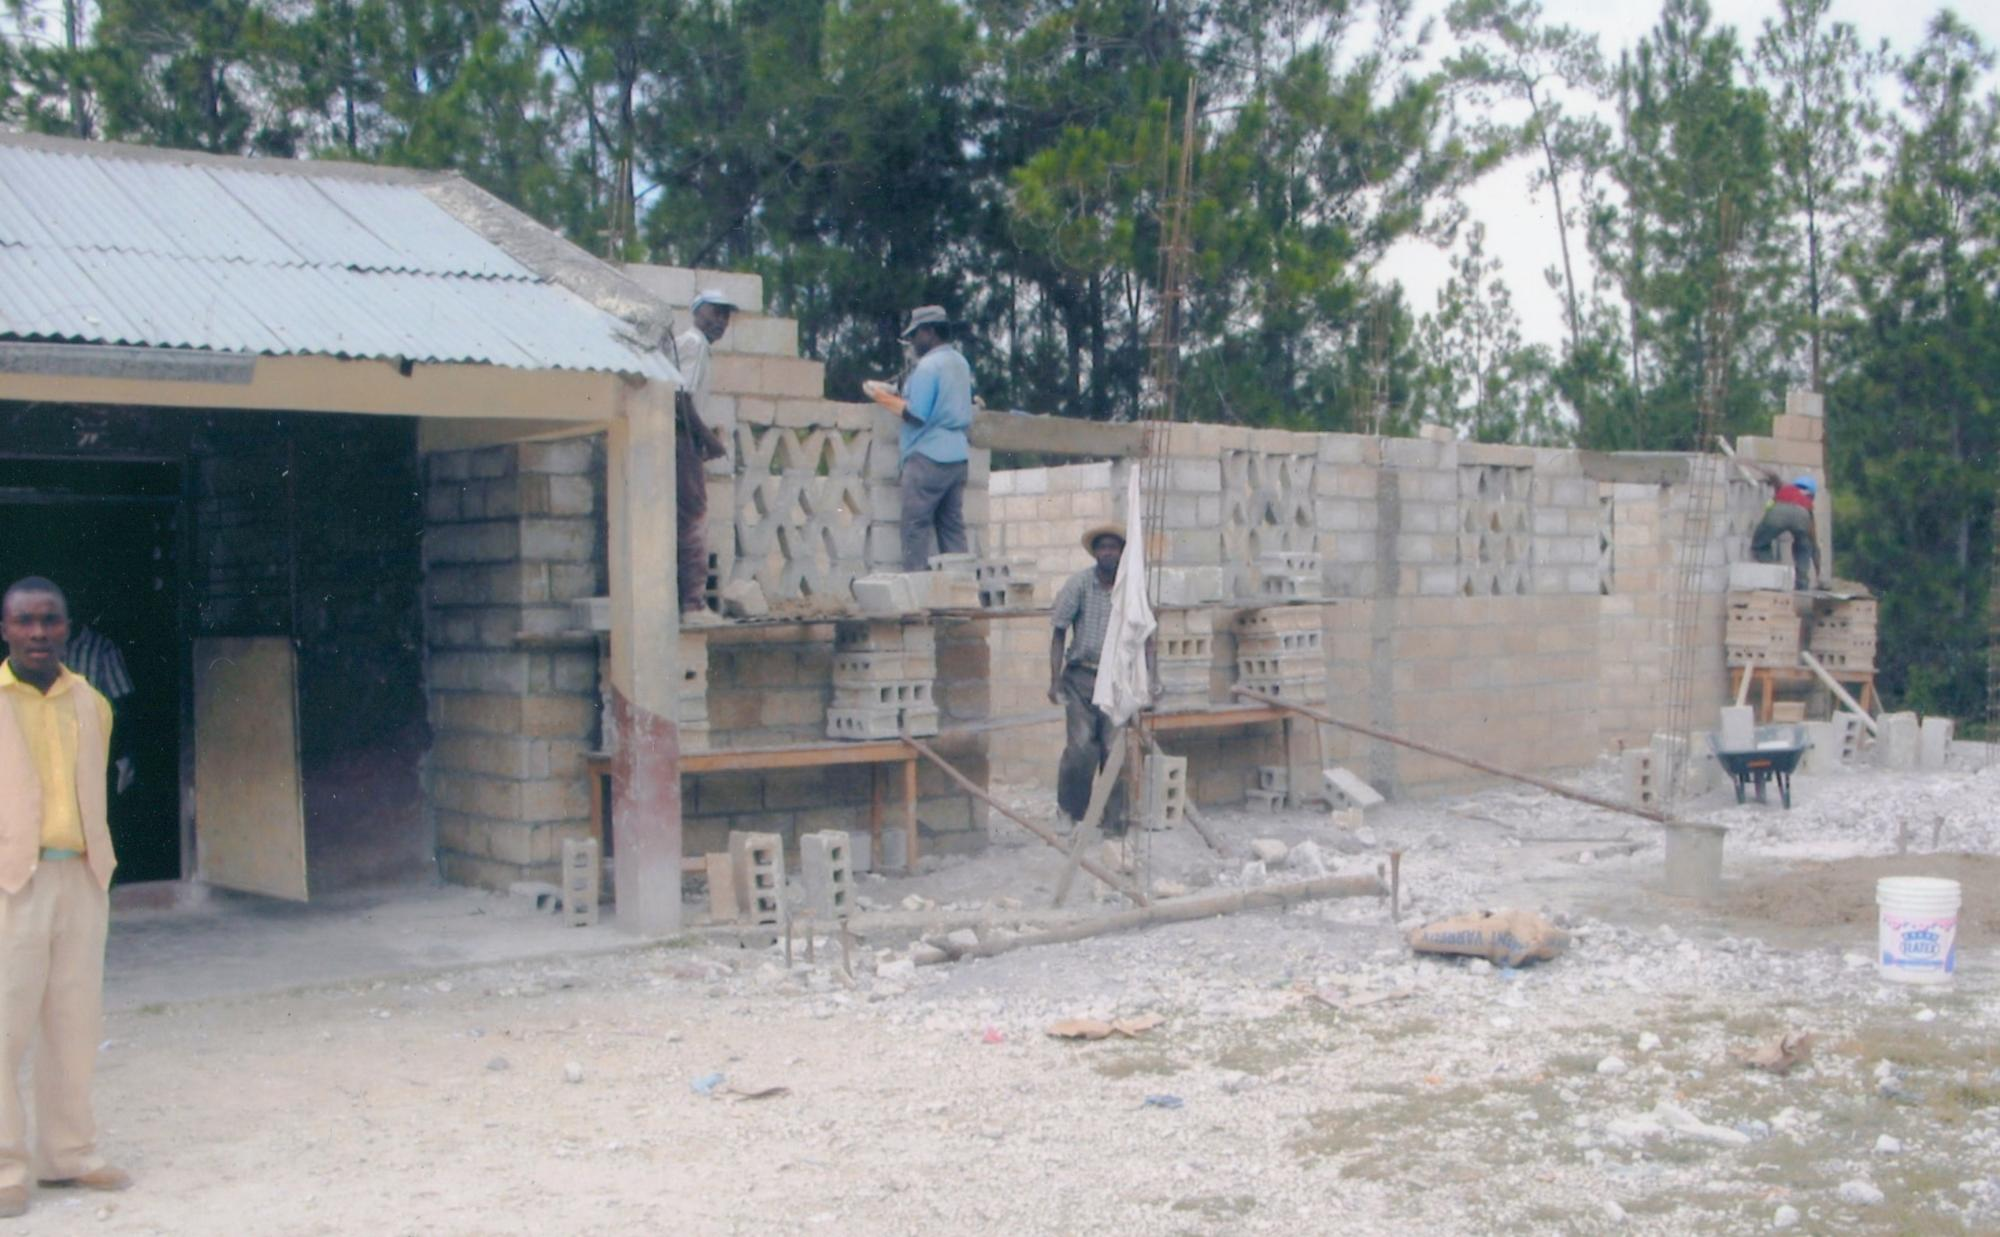 2002-3_Thiotte_Clinic_Construction_HMMW_p_DrMM_image3.jpg